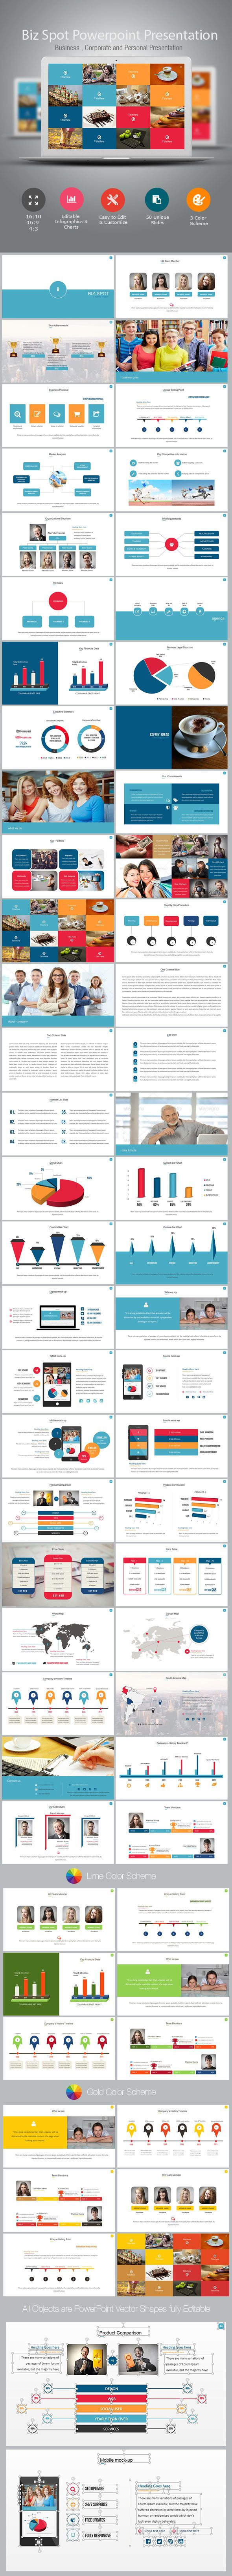 Biz Spot Power Point Presentation (PowerPoint Templates)